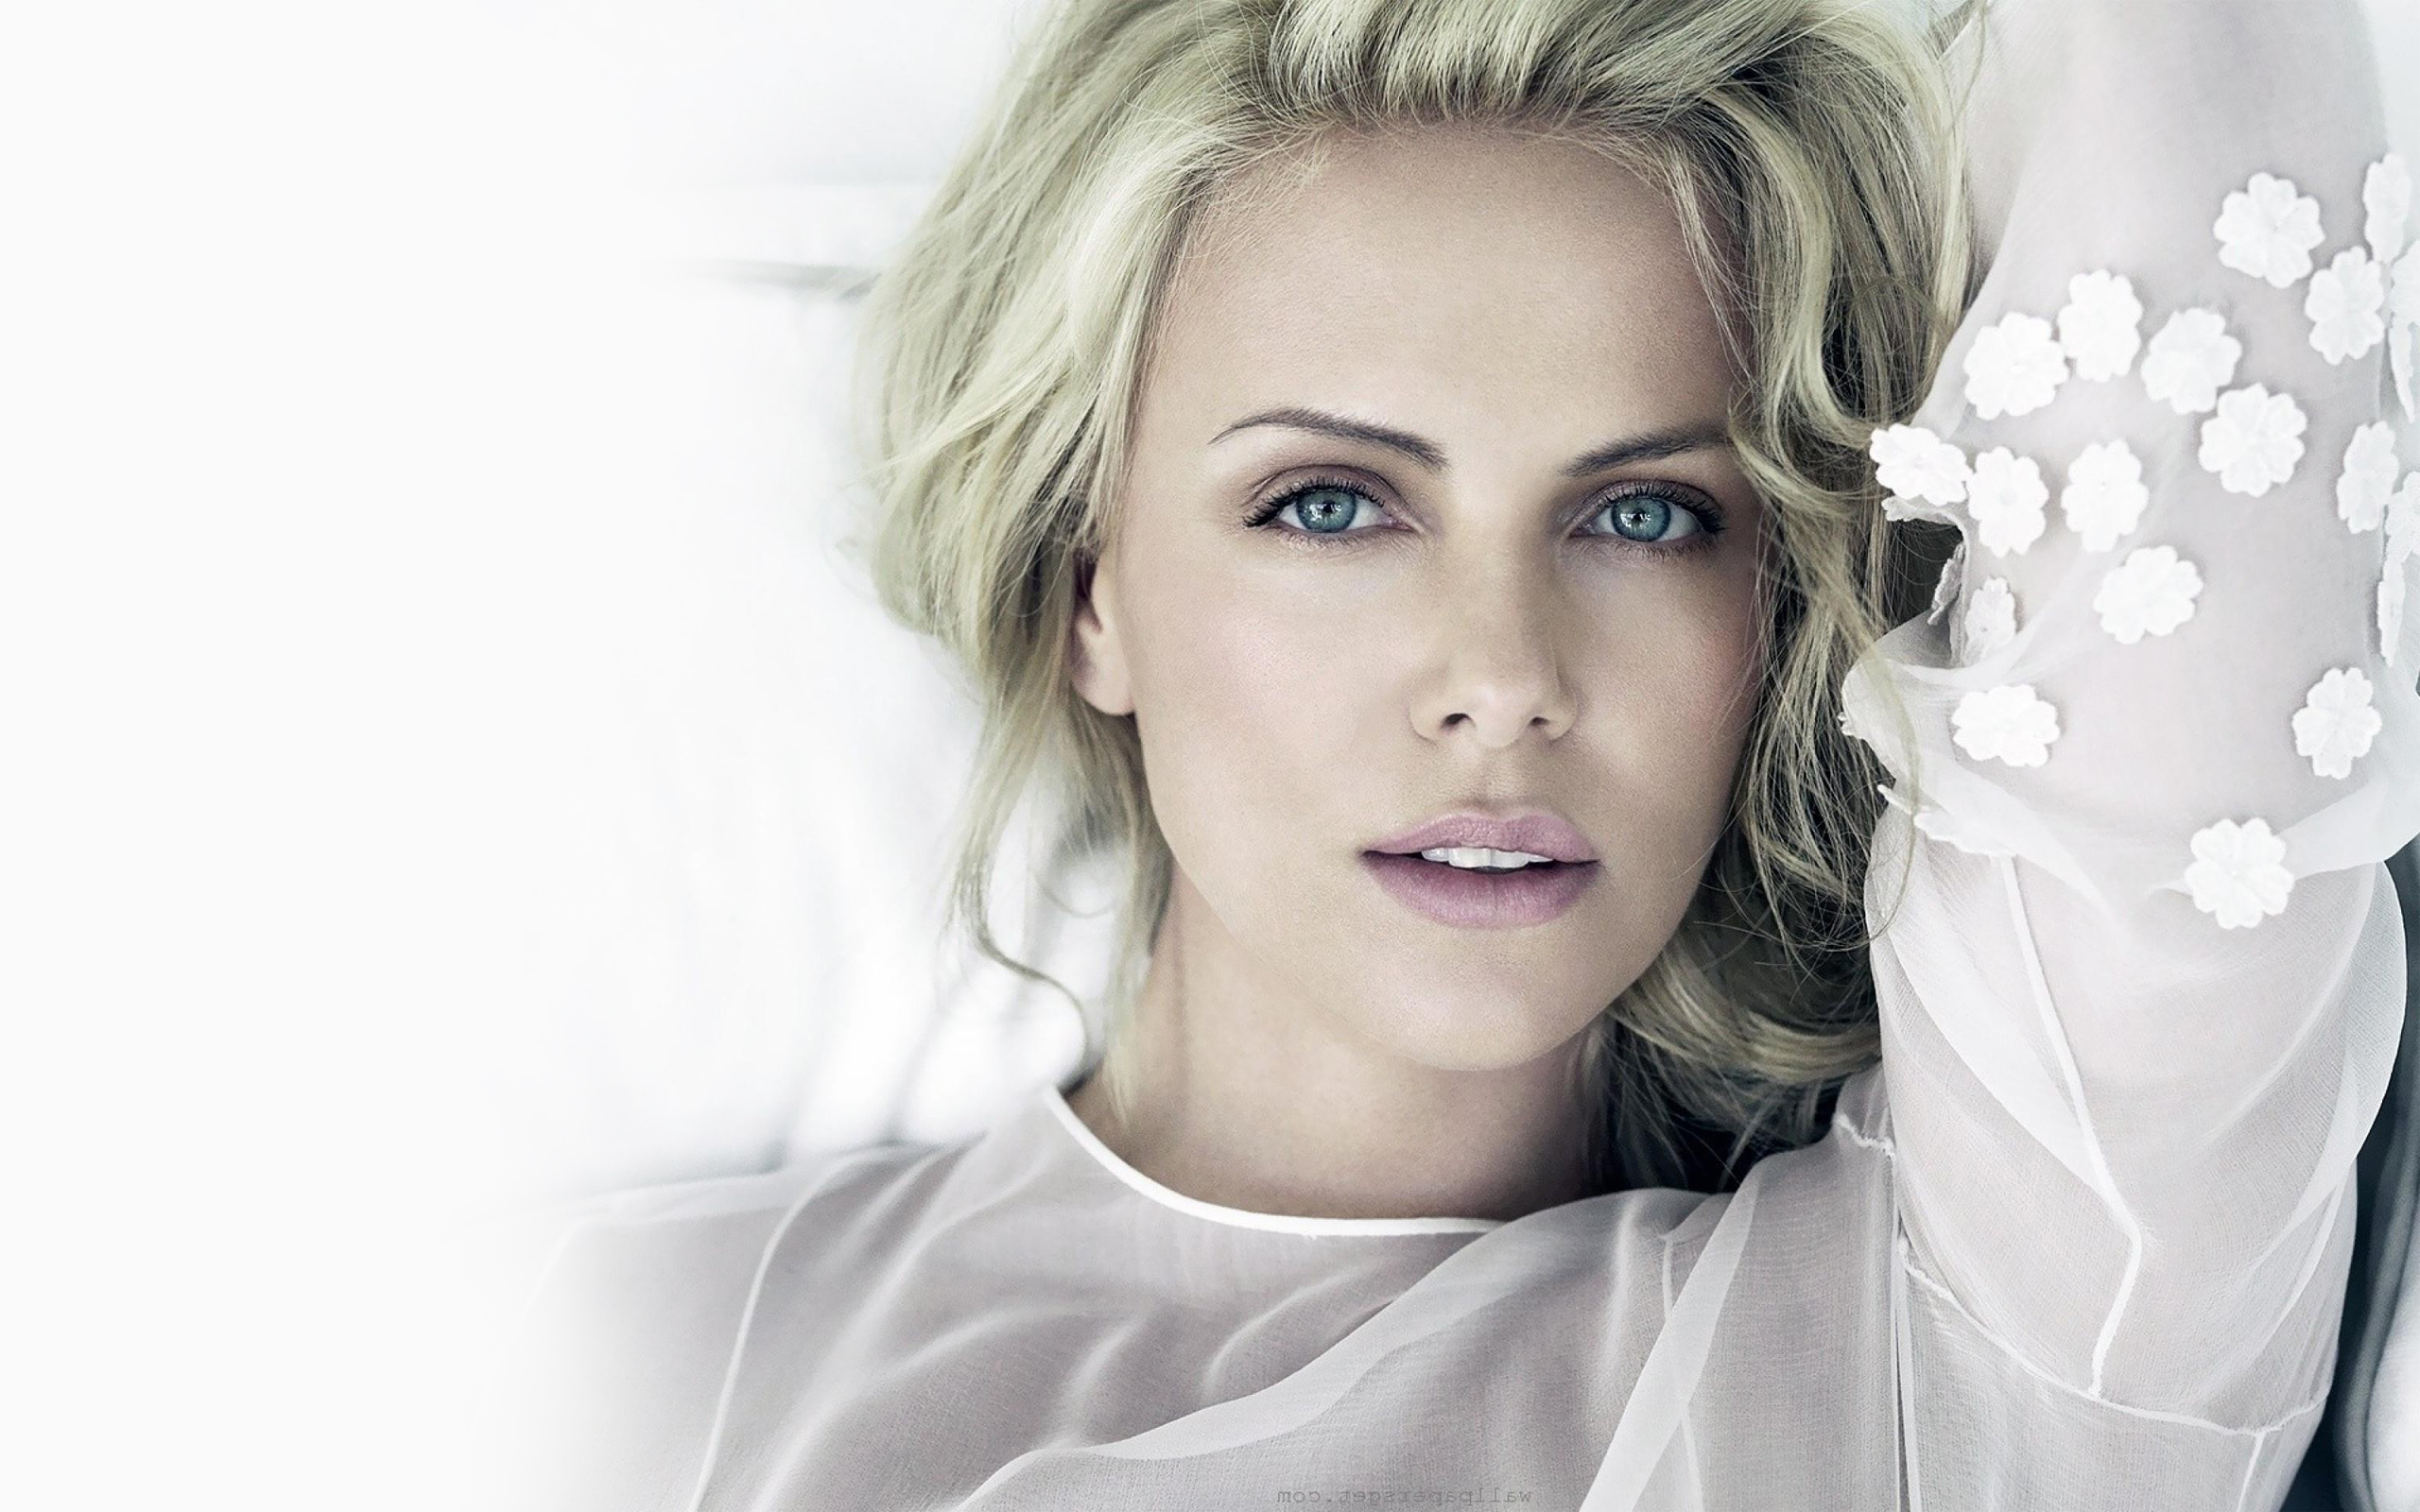 high quality free awesome hd charlize theron photo